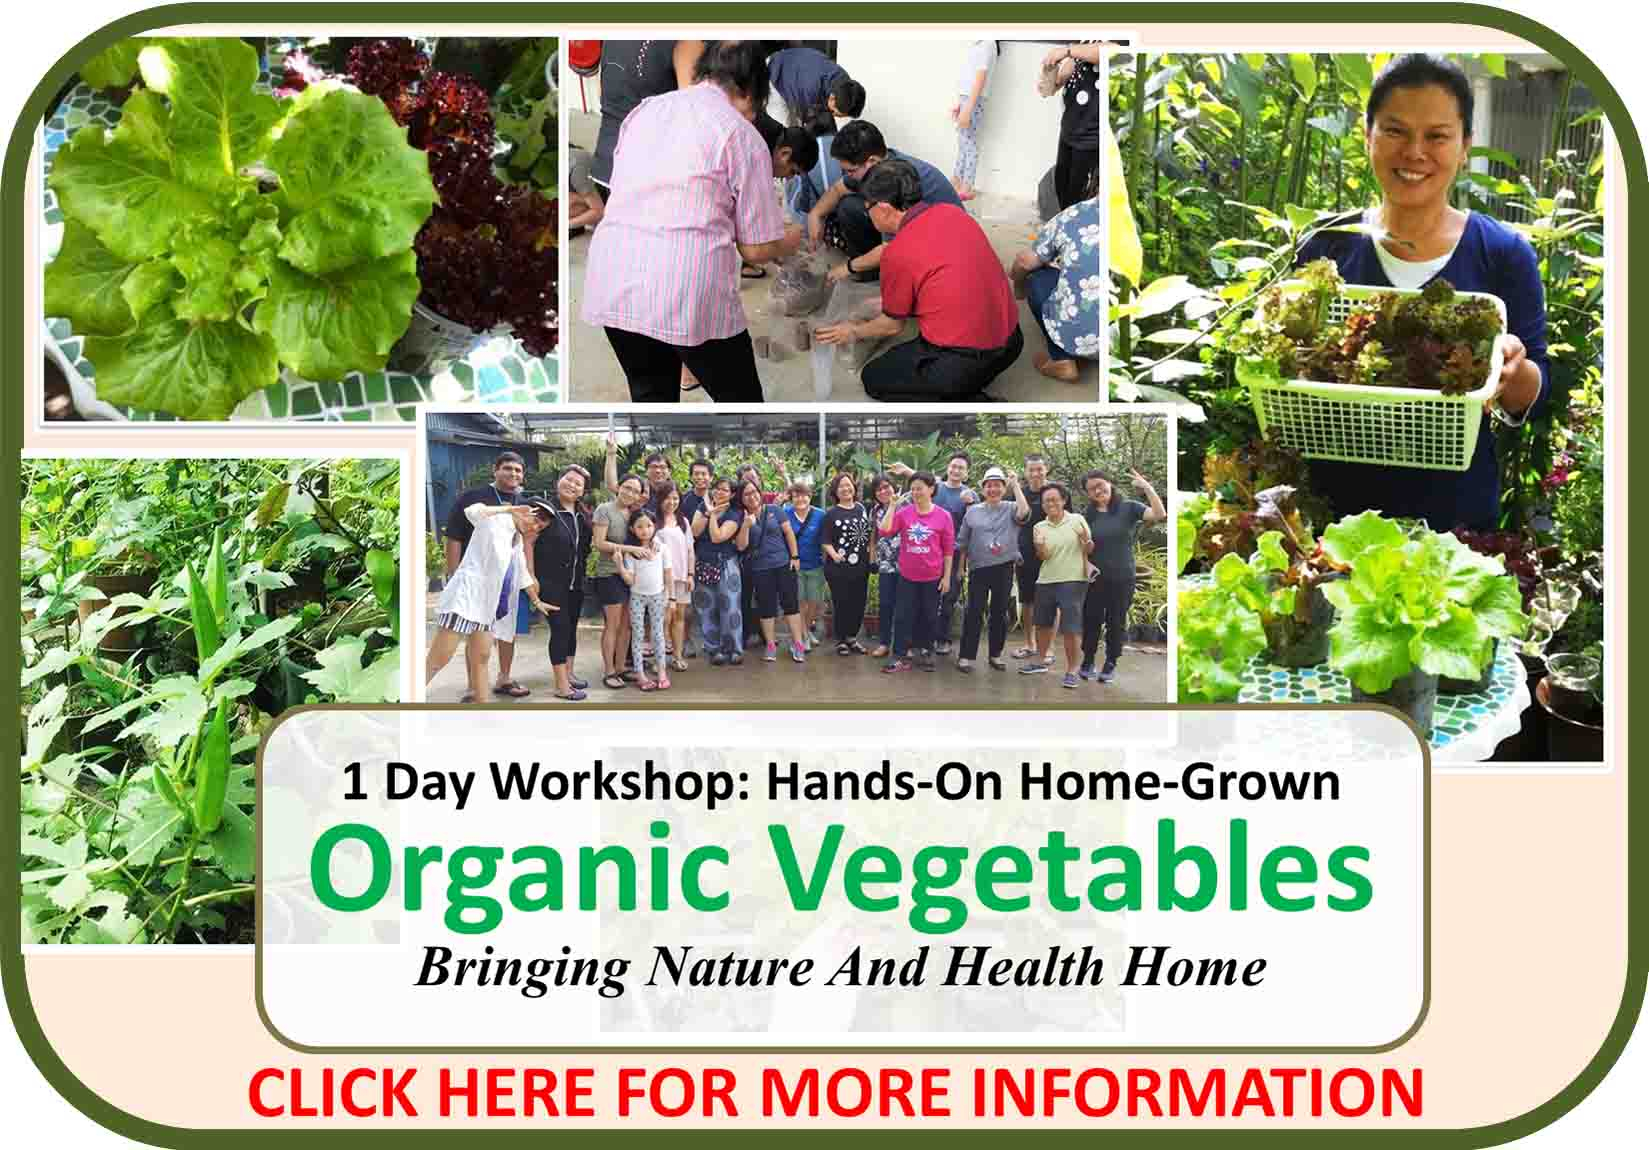 1 Day Hands-On Home-Grown Organic Vegetables